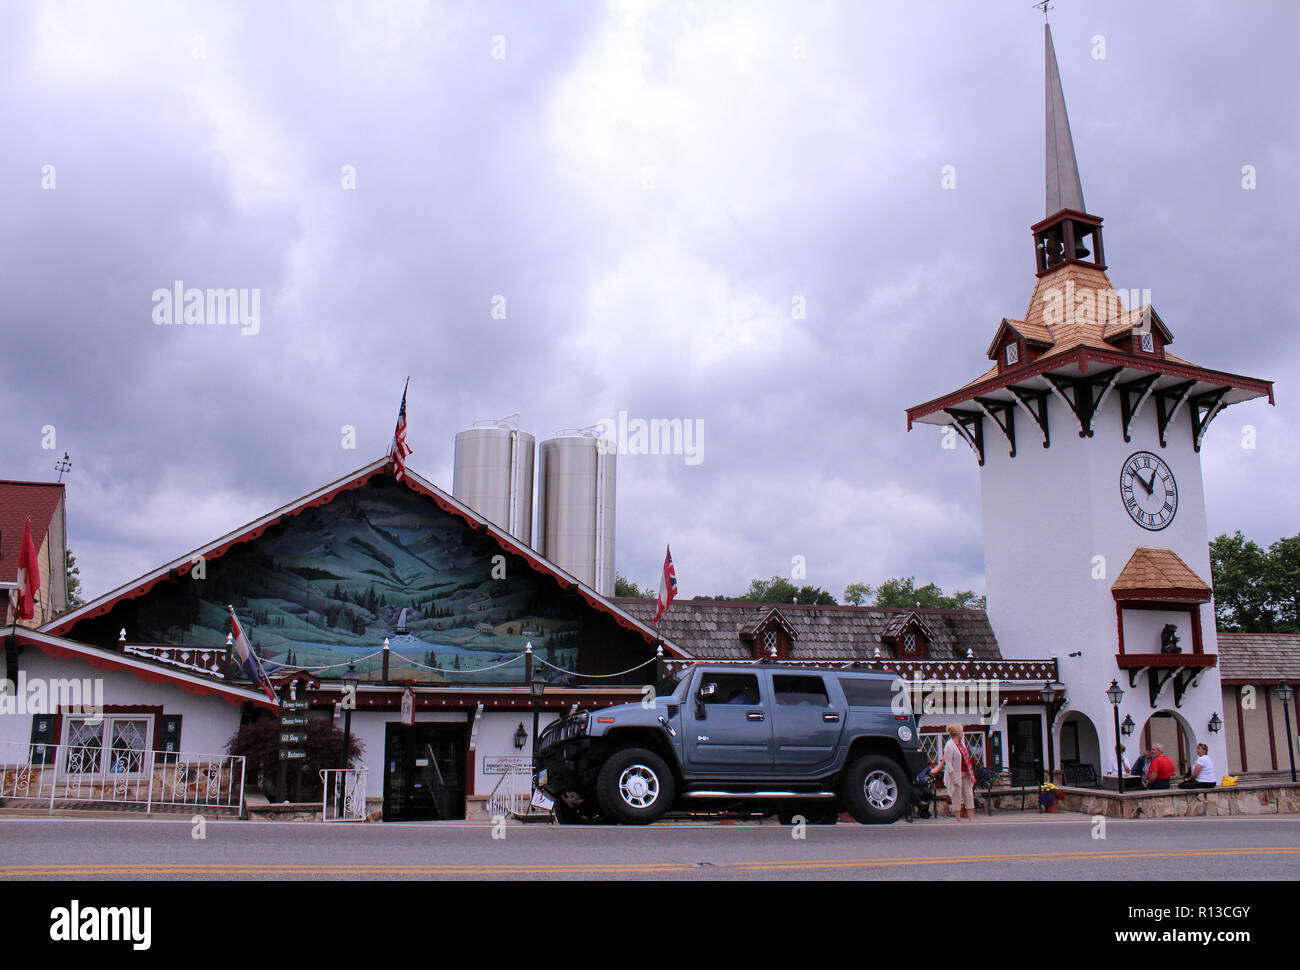 Guggisberg Cheese, home of original baby swiss, housed in imitation Swiss village with giant Hummer vehicle parked in front, near Millersburg, OH, USA Stock Photo